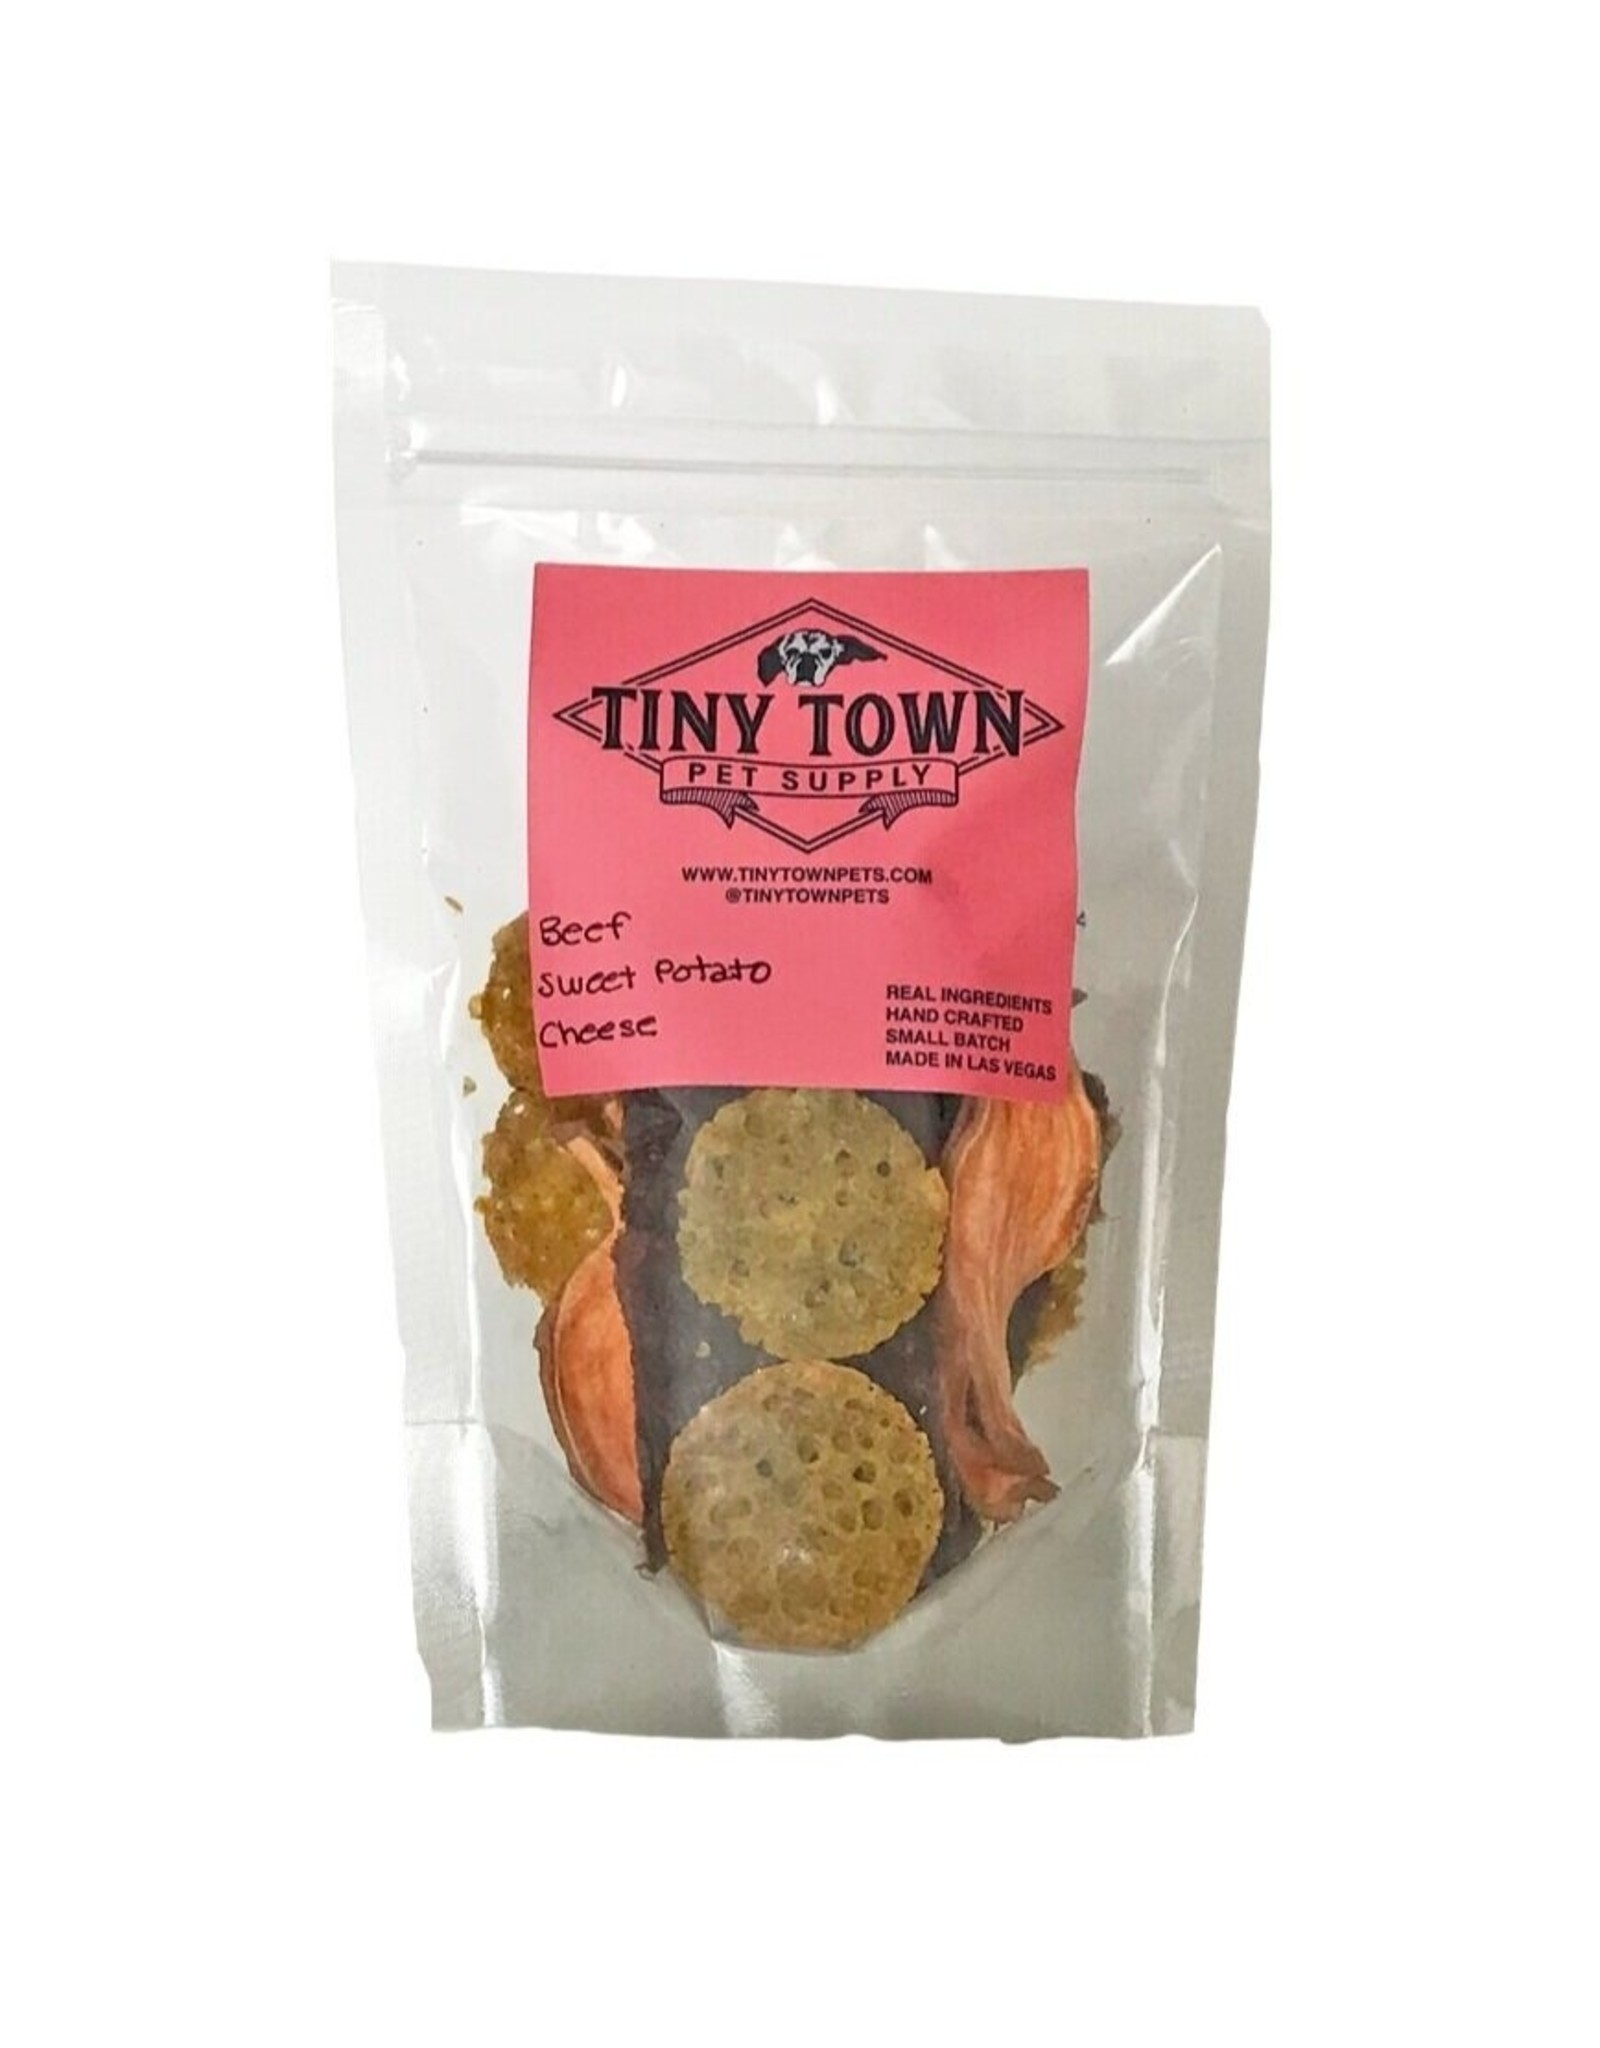 Tiny Town Pet Supply TINY TOWN PET SUPPLY BEEF WITH SWEET POTATO & CHEESE TREATS 3OZ